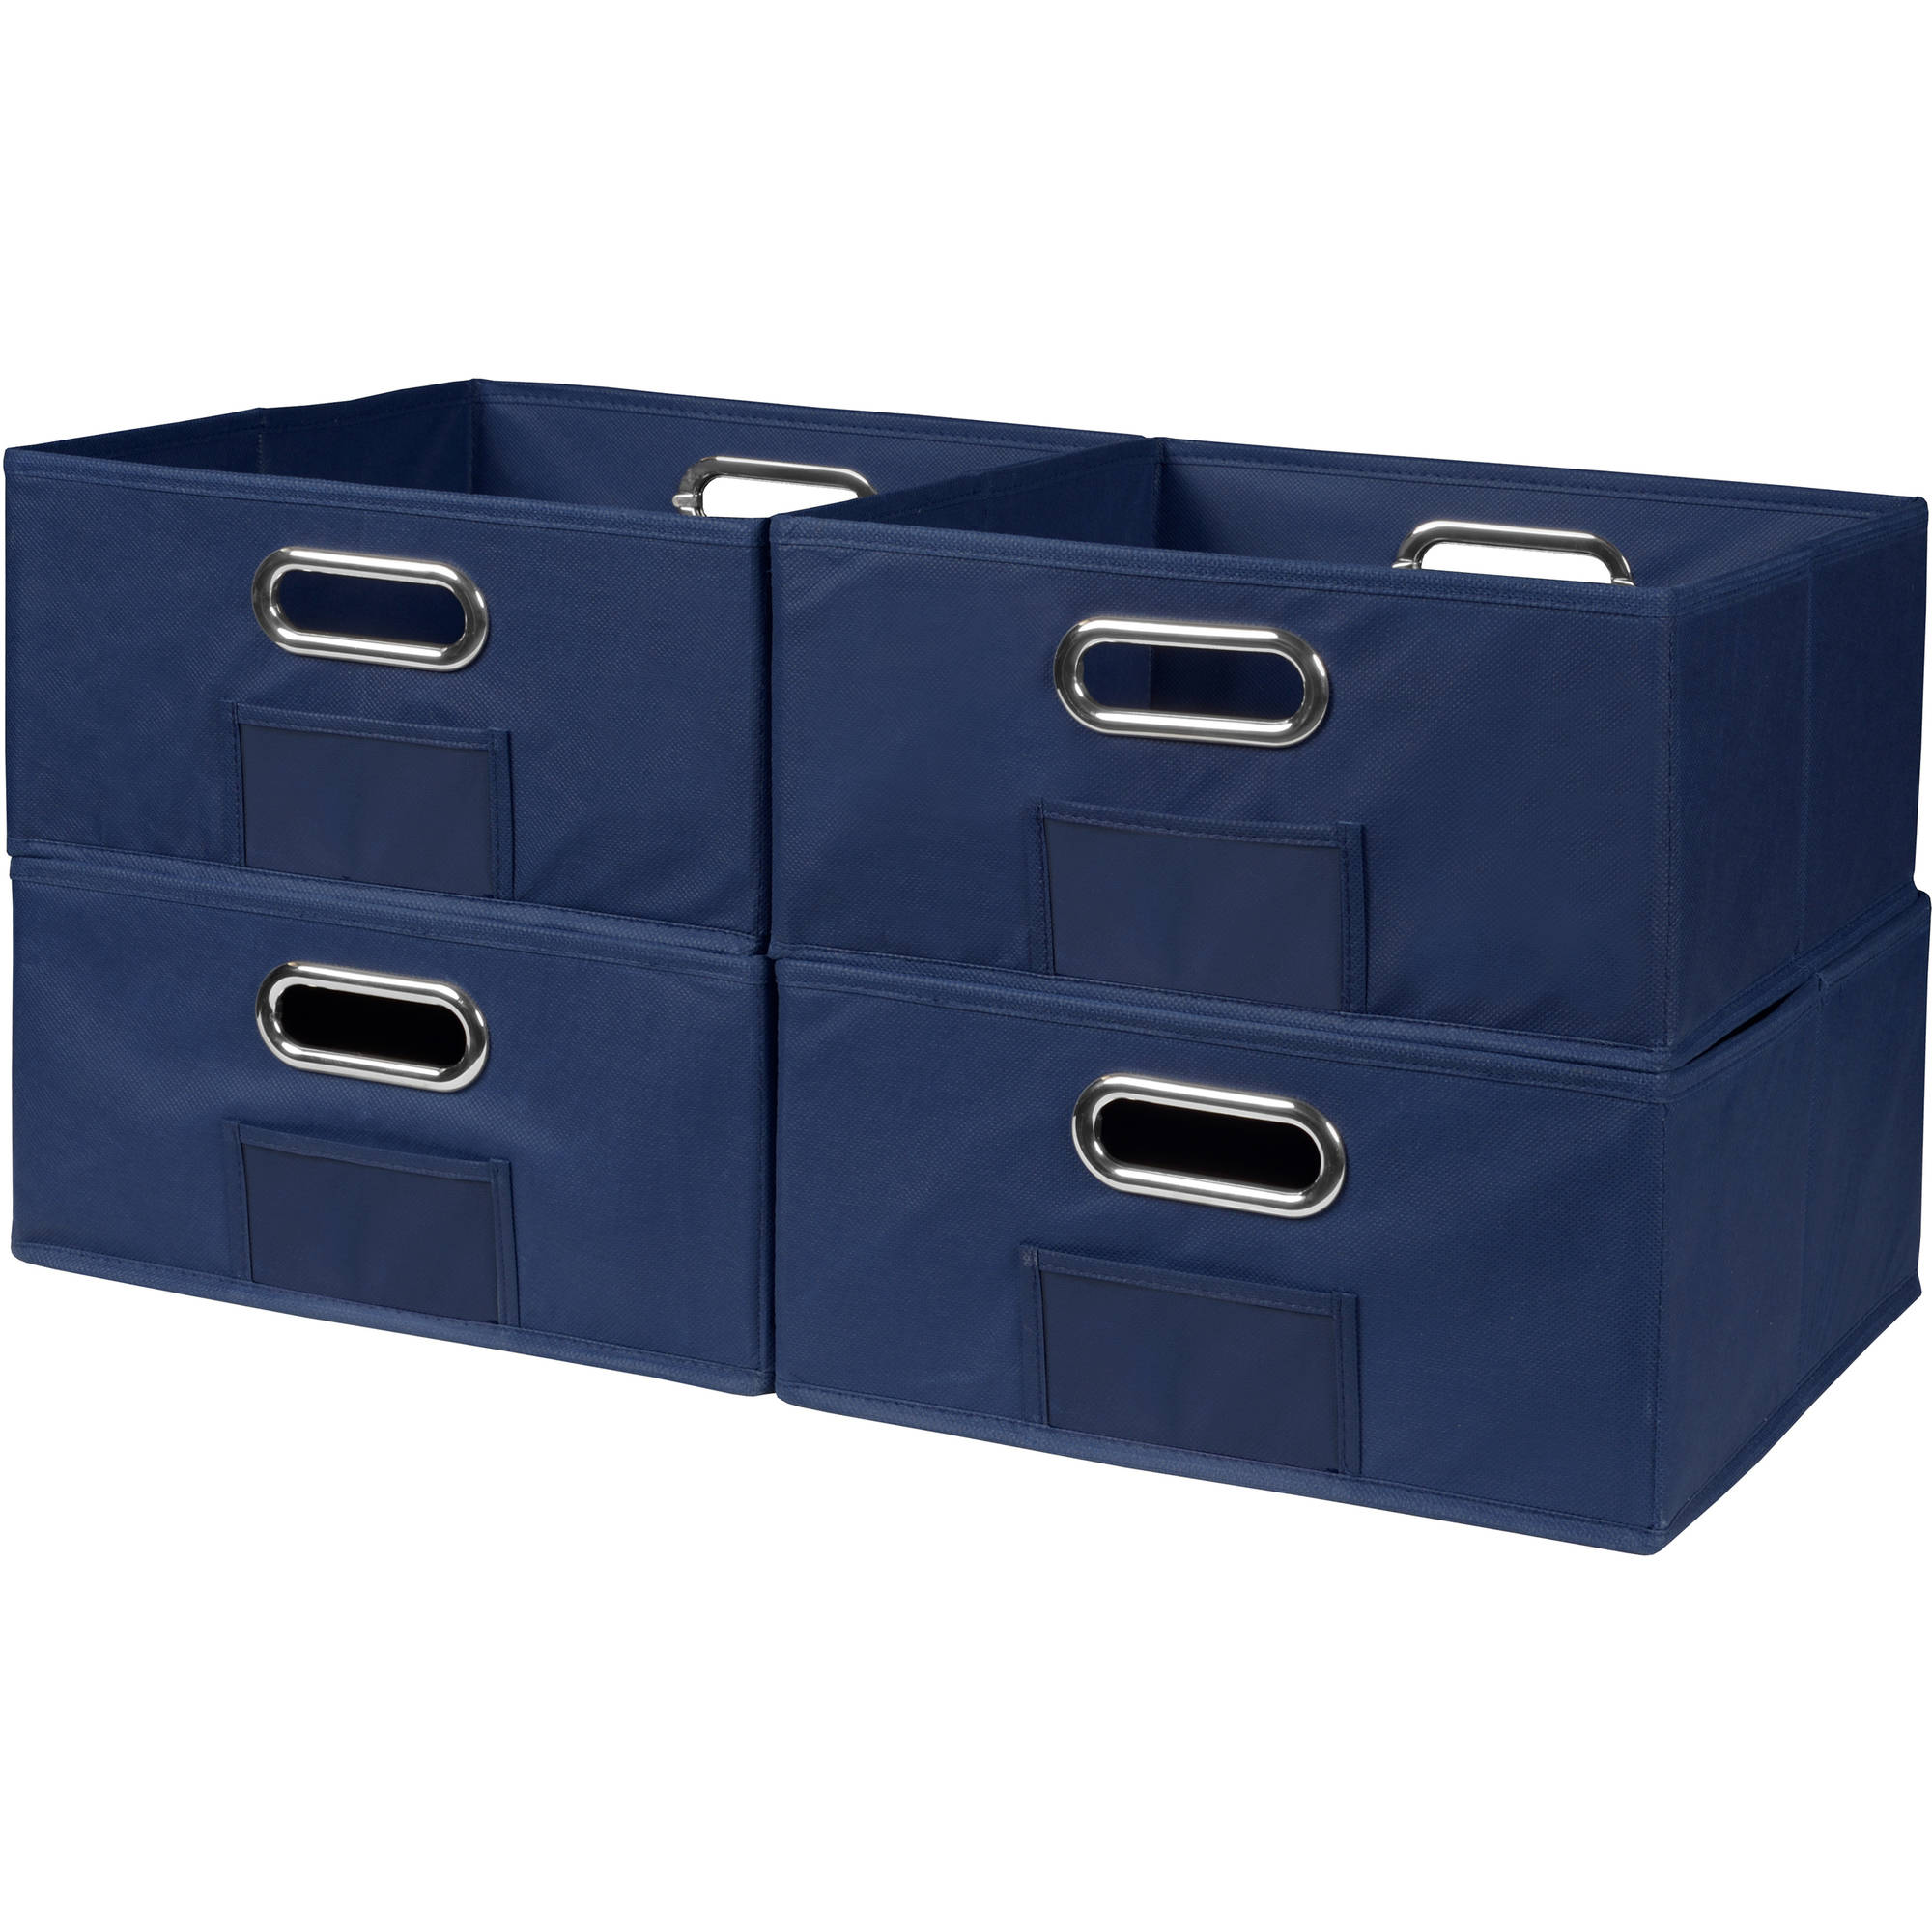 Niche Cubo Set of 4 Half-Size Foldable Fabric Storage Bins- Blue